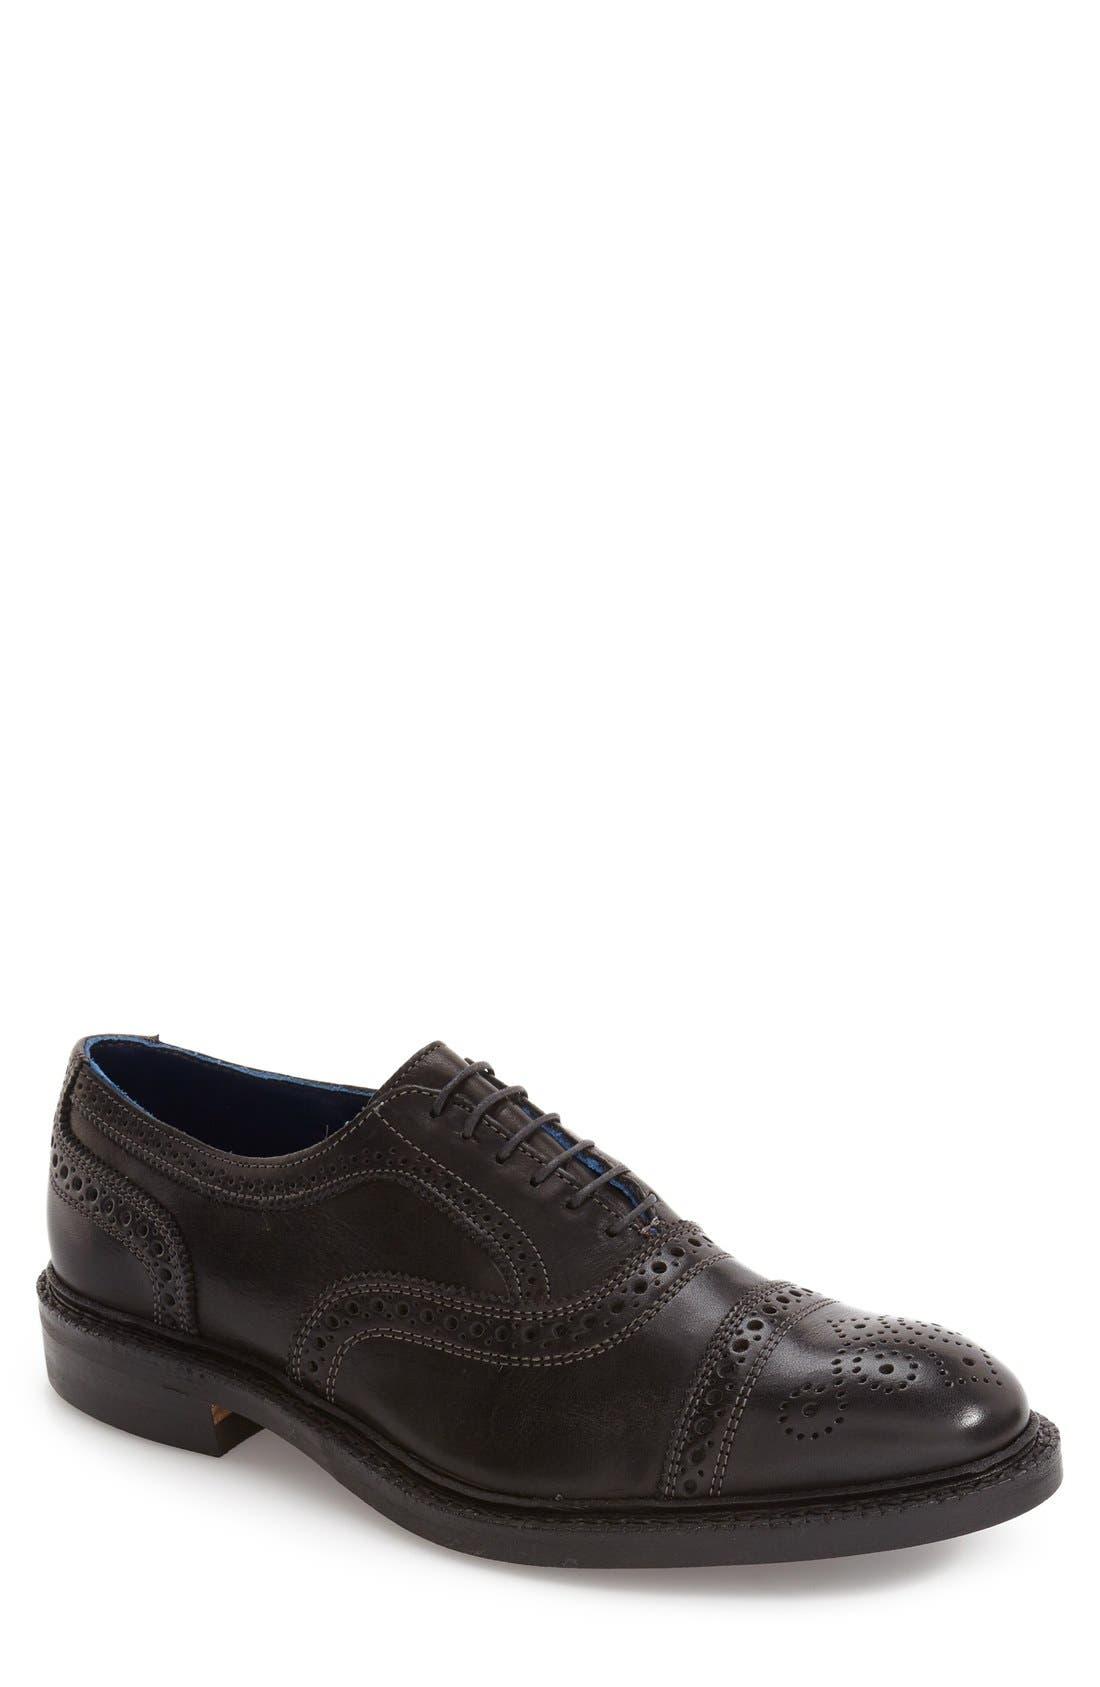 'Strandmok' Cap Toe Oxford,                         Main,                         color, Black